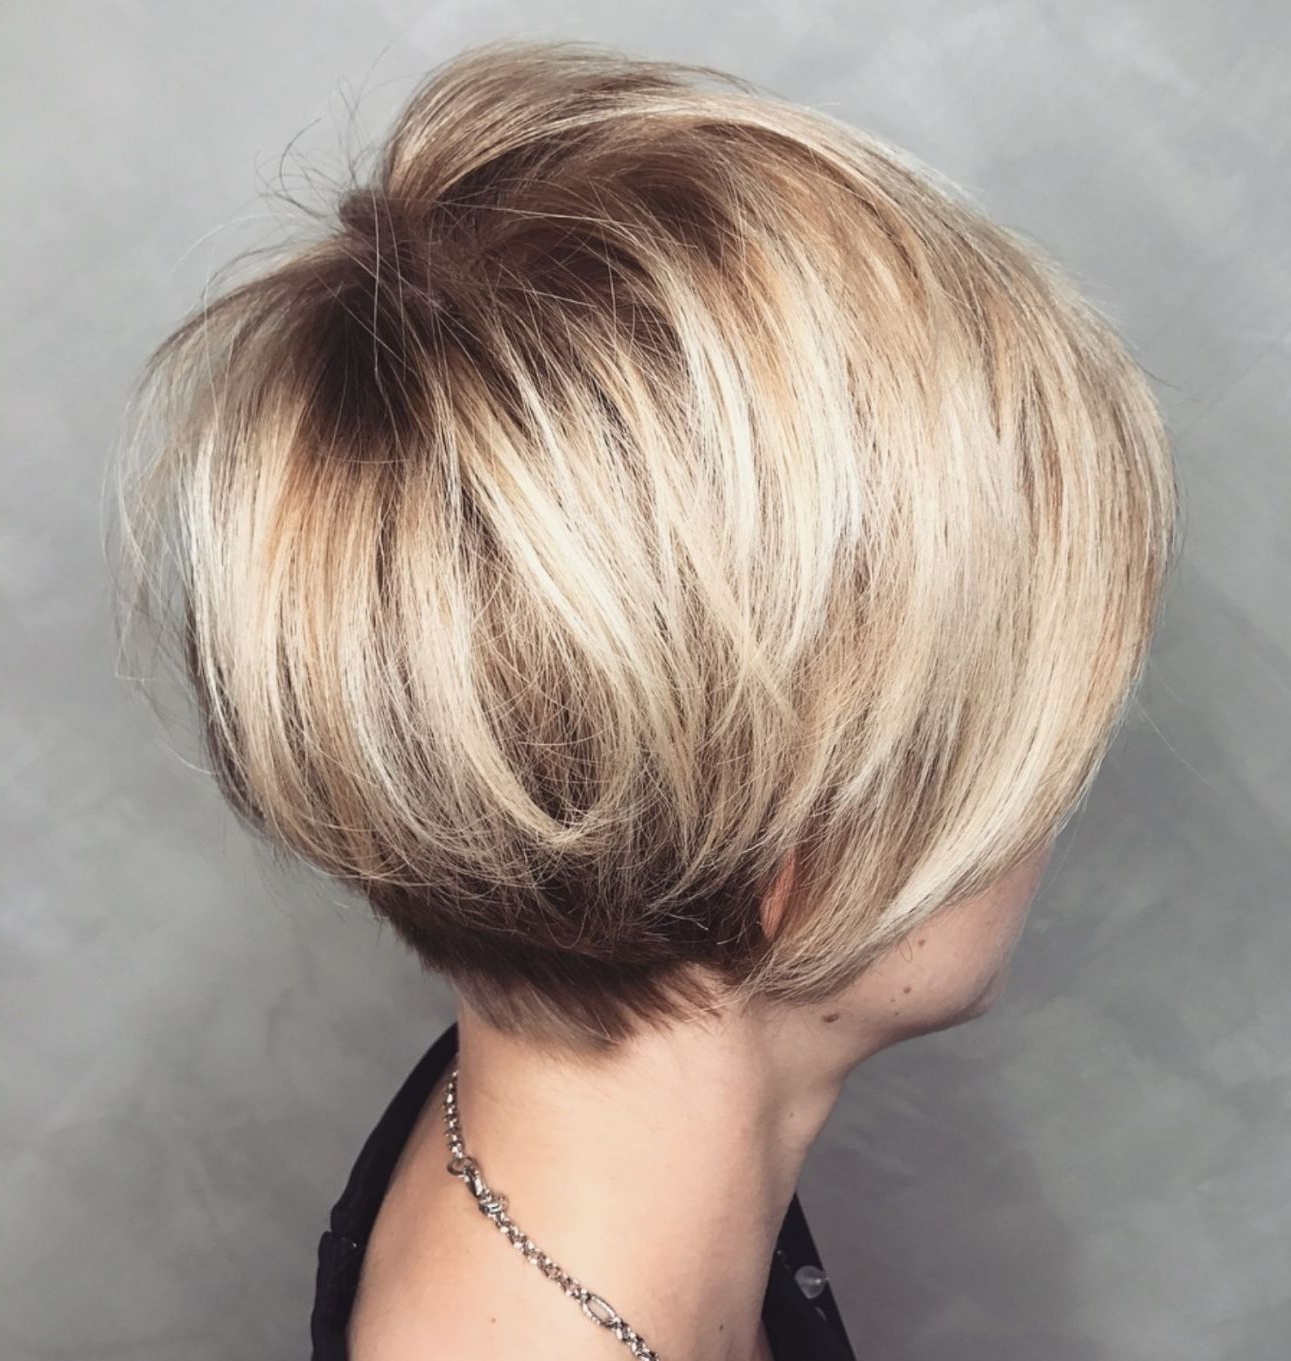 100 Mind Blowing Short Hairstyles For Fine Hair In 2019 With Regard To Long Pixie Haircuts With Sharp Layers And Highlights (Gallery 16 of 20)